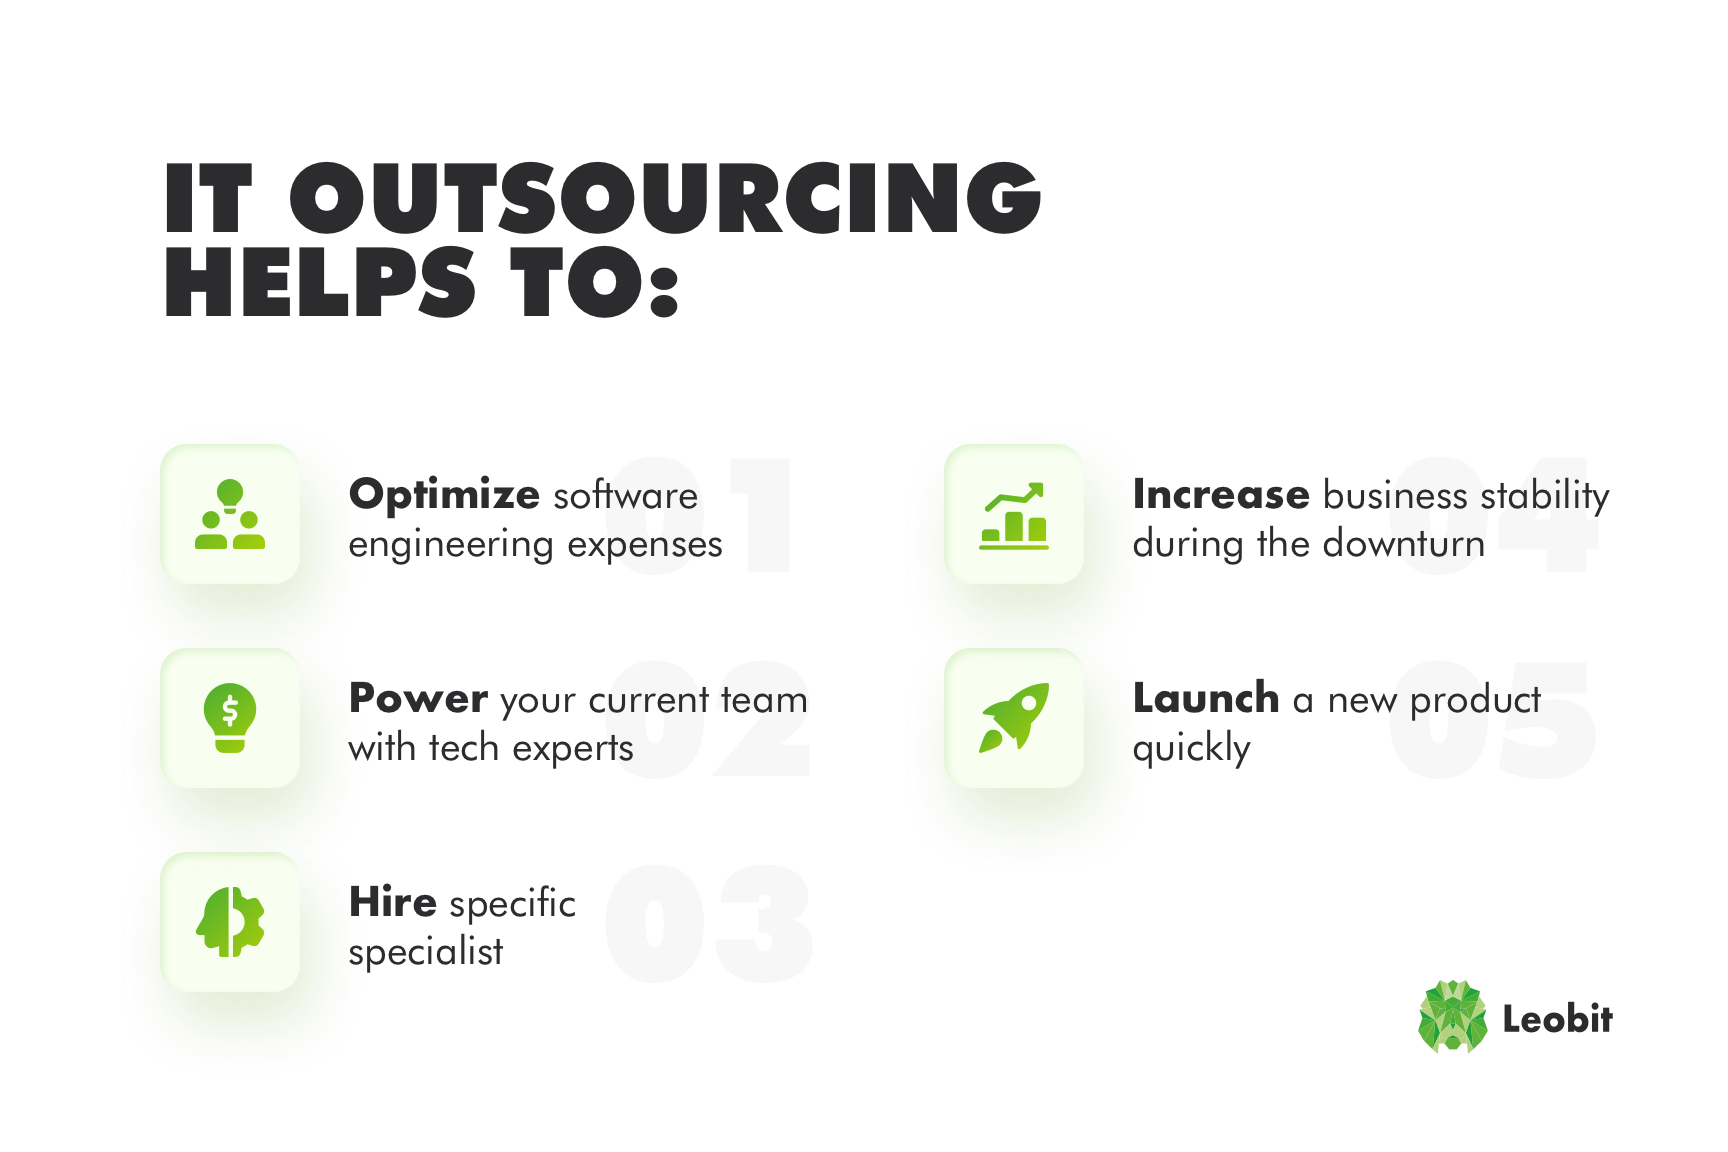 How IT Outsourcing helps businesses